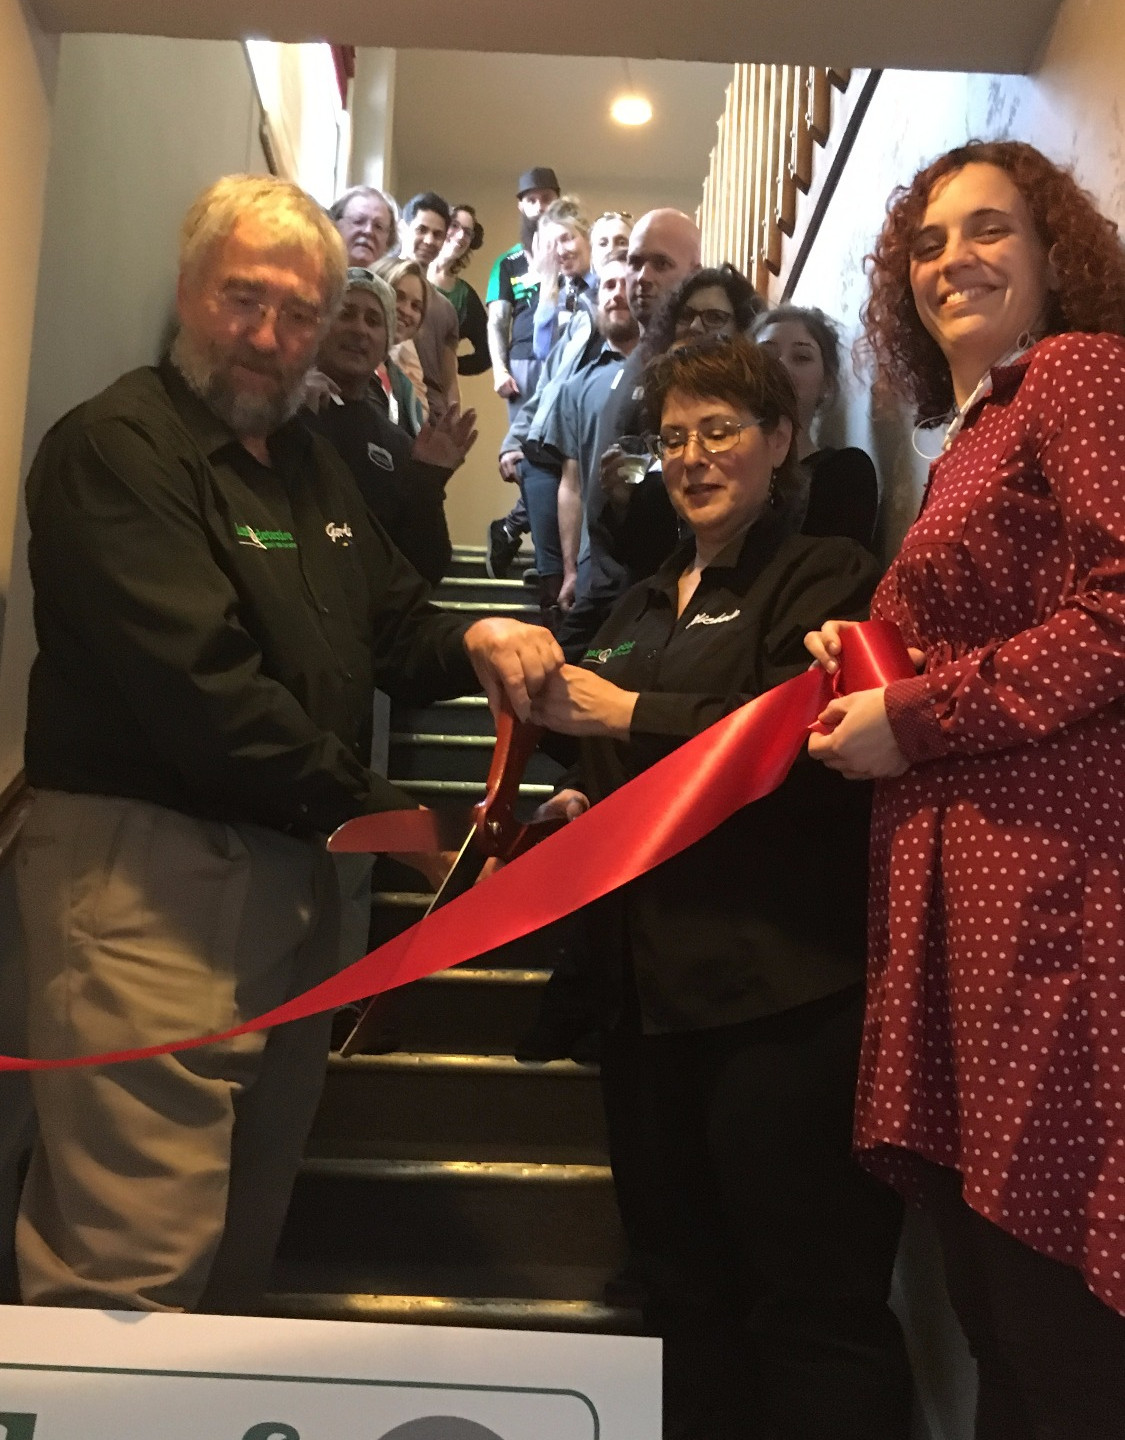 The big moment! Gordon and Michele (left to right in front) cut the ribbon to welcome the cannabis community to their new offices.